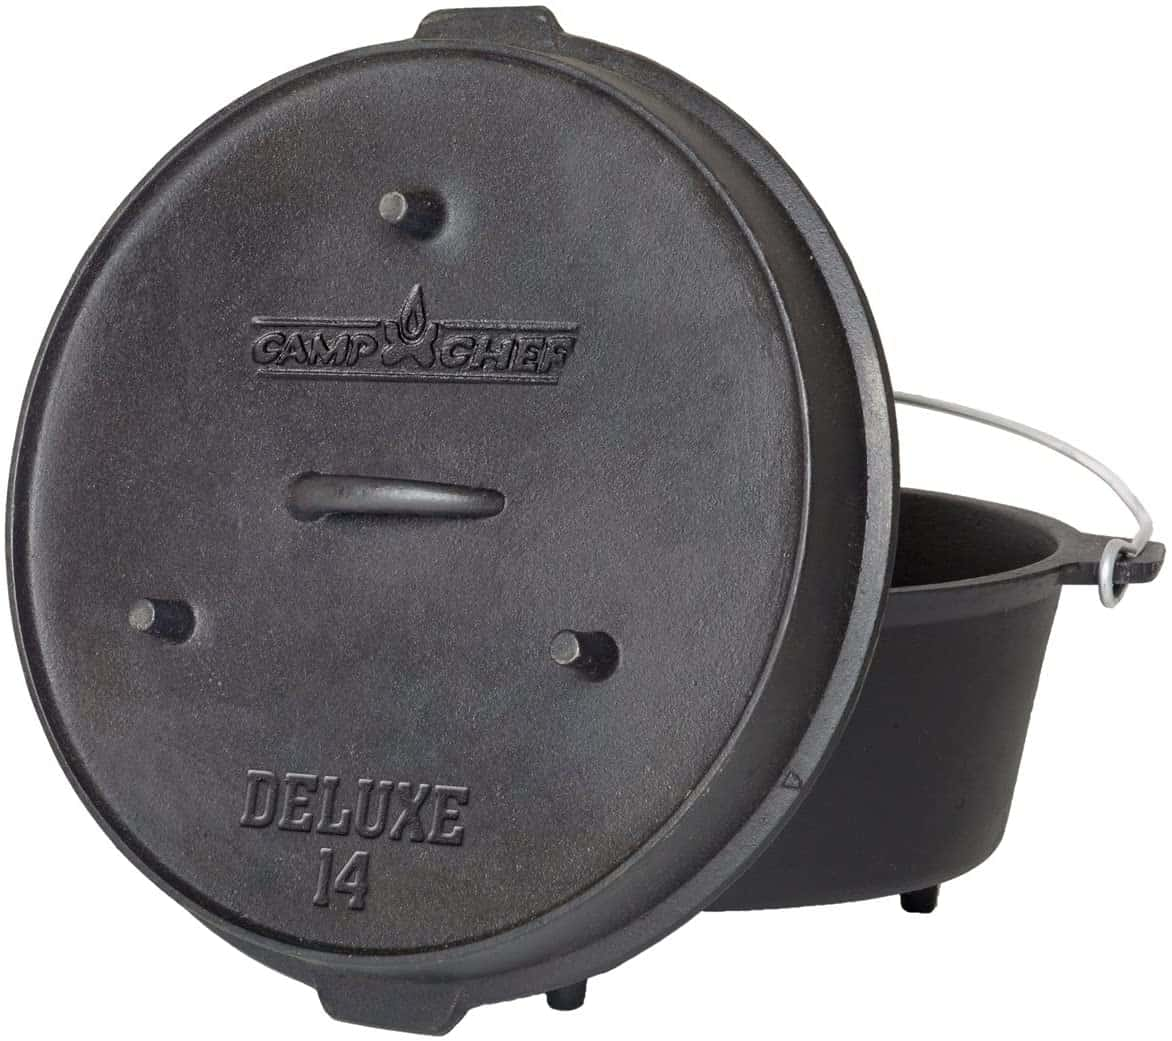 Best Large Outdoor Dutch Oven Camp Dutch Oven: Camp Chef 12QT